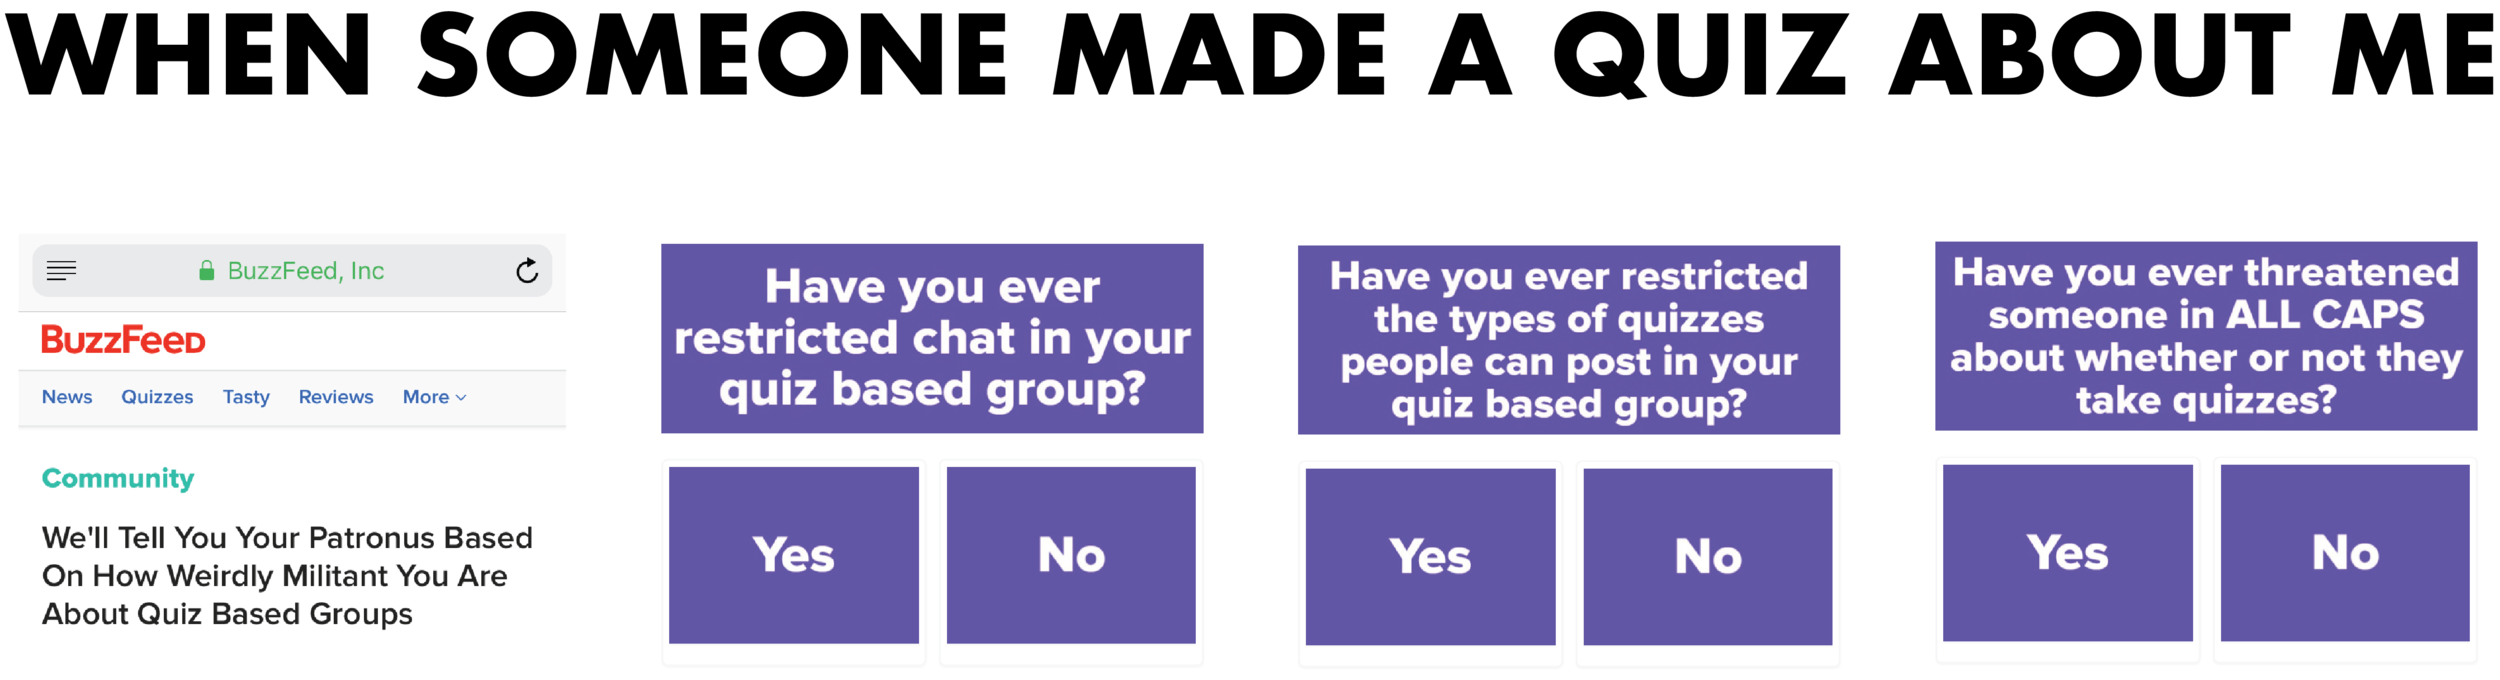 BUZZFEED-03.png